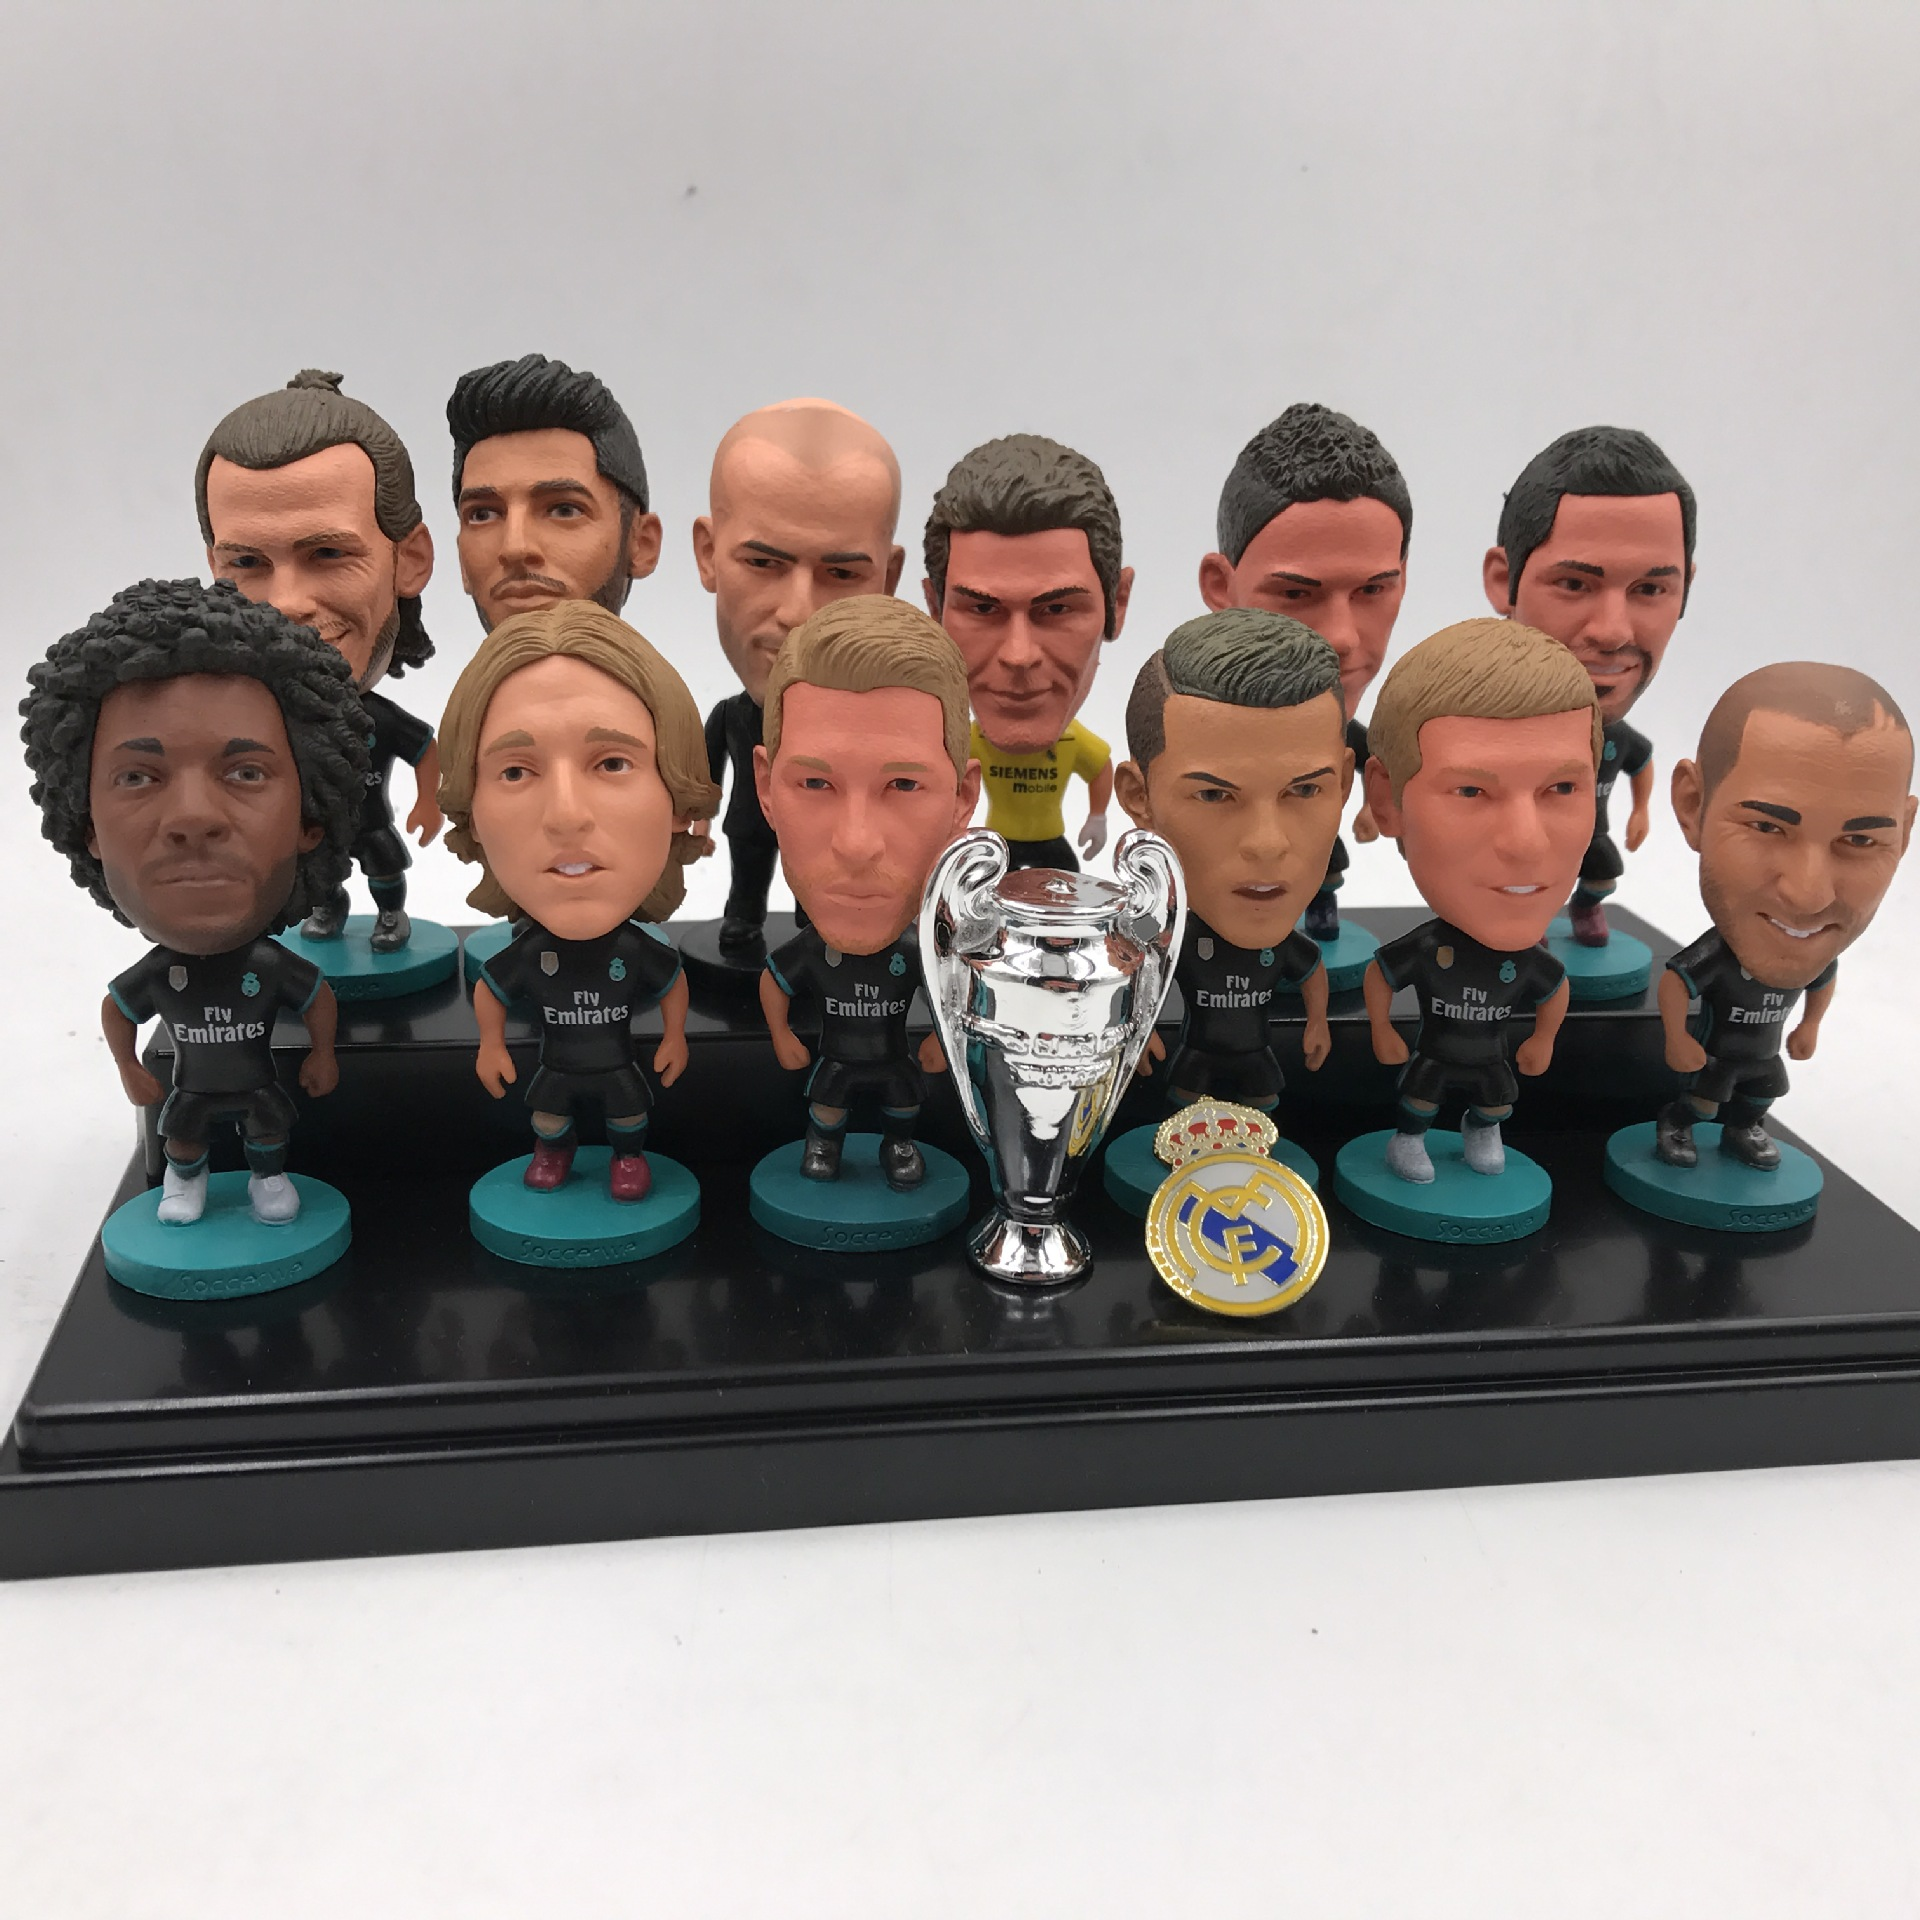 Soccerwe Spain Club Soccer Star Lovely Action Figures Toys Fans Collection Football Dolls Gift C Ronaldo Benzema Isco Ramos Bale